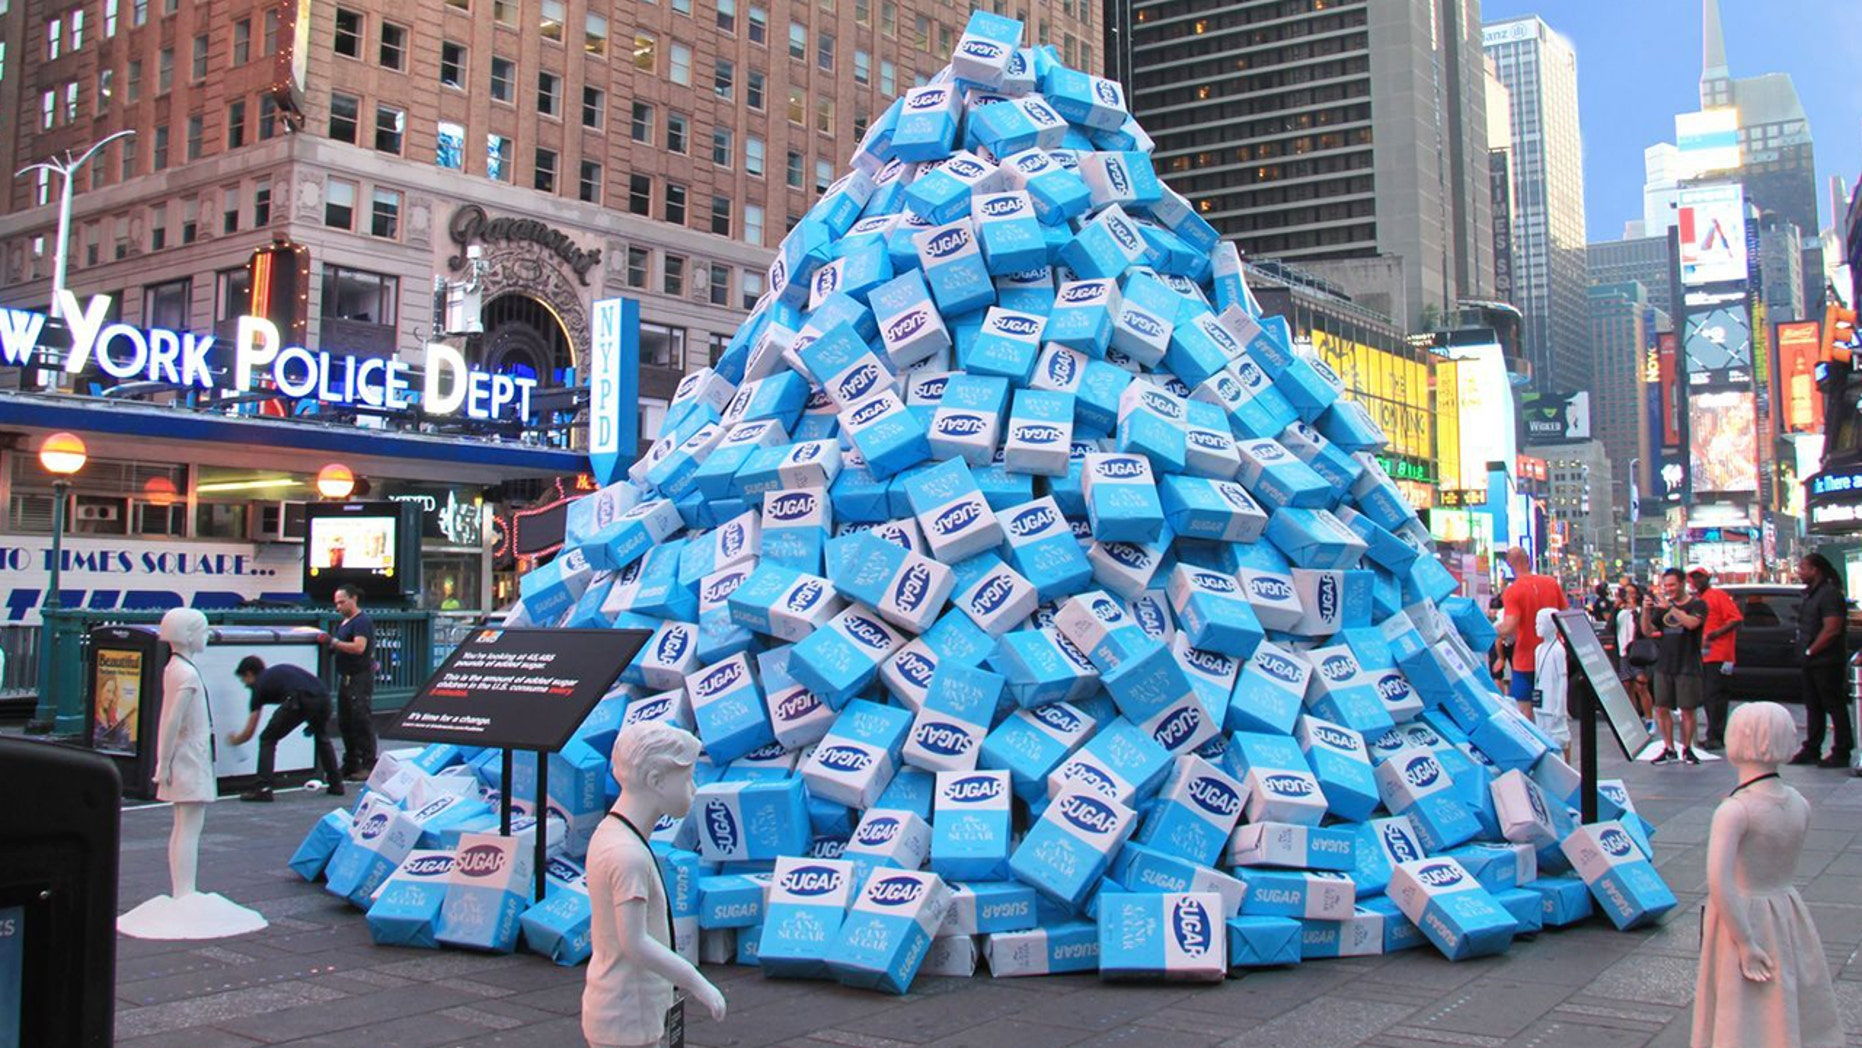 Kind Snacks installed a display in Times Square featuring 50,000 pounds of sugar